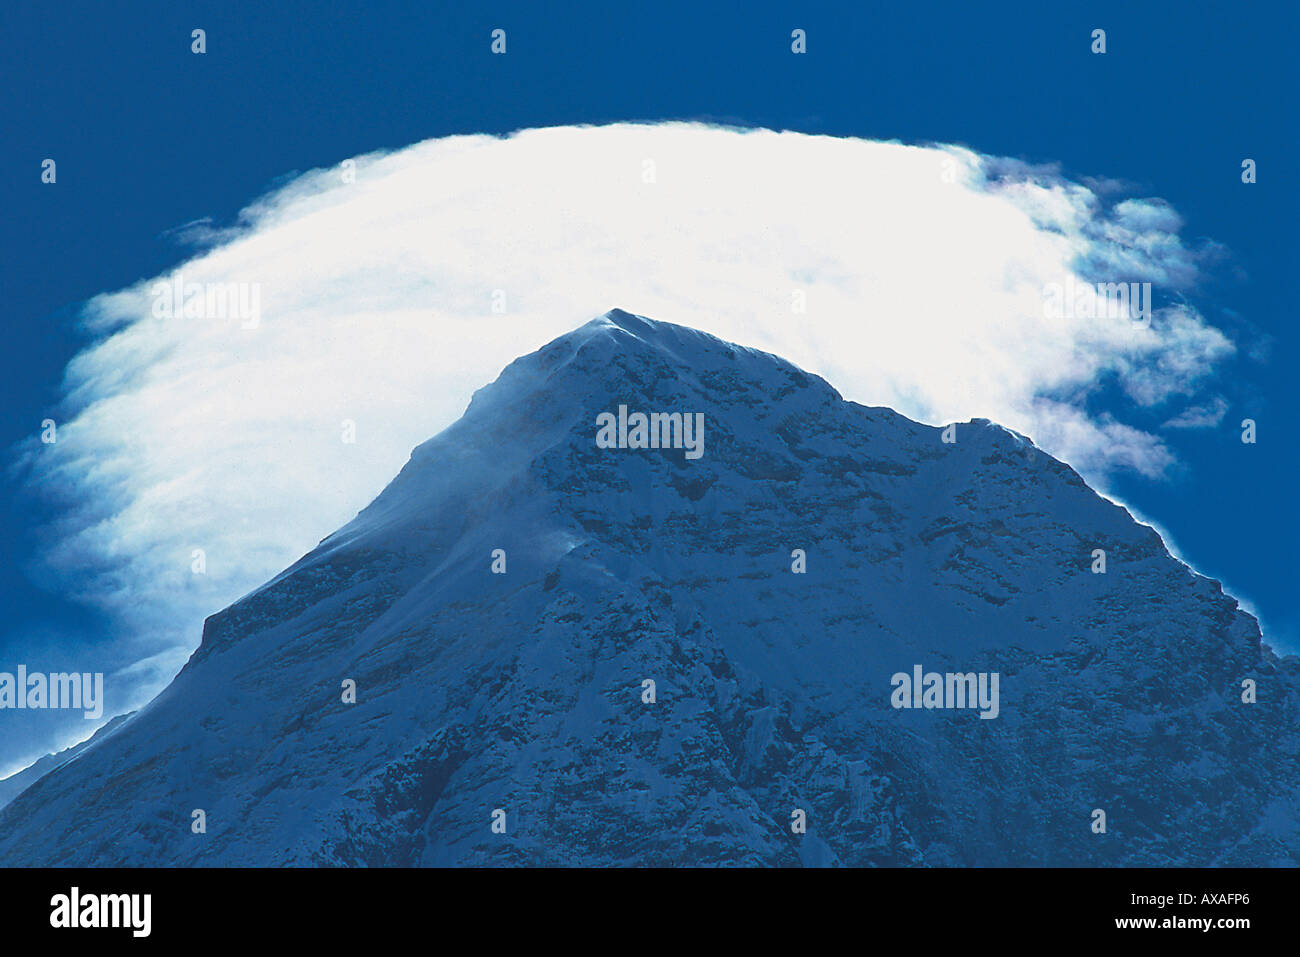 Mount Everest summit, 8, 848 m, Solu Khumbu, Nepal, Himalaya - Stock Image